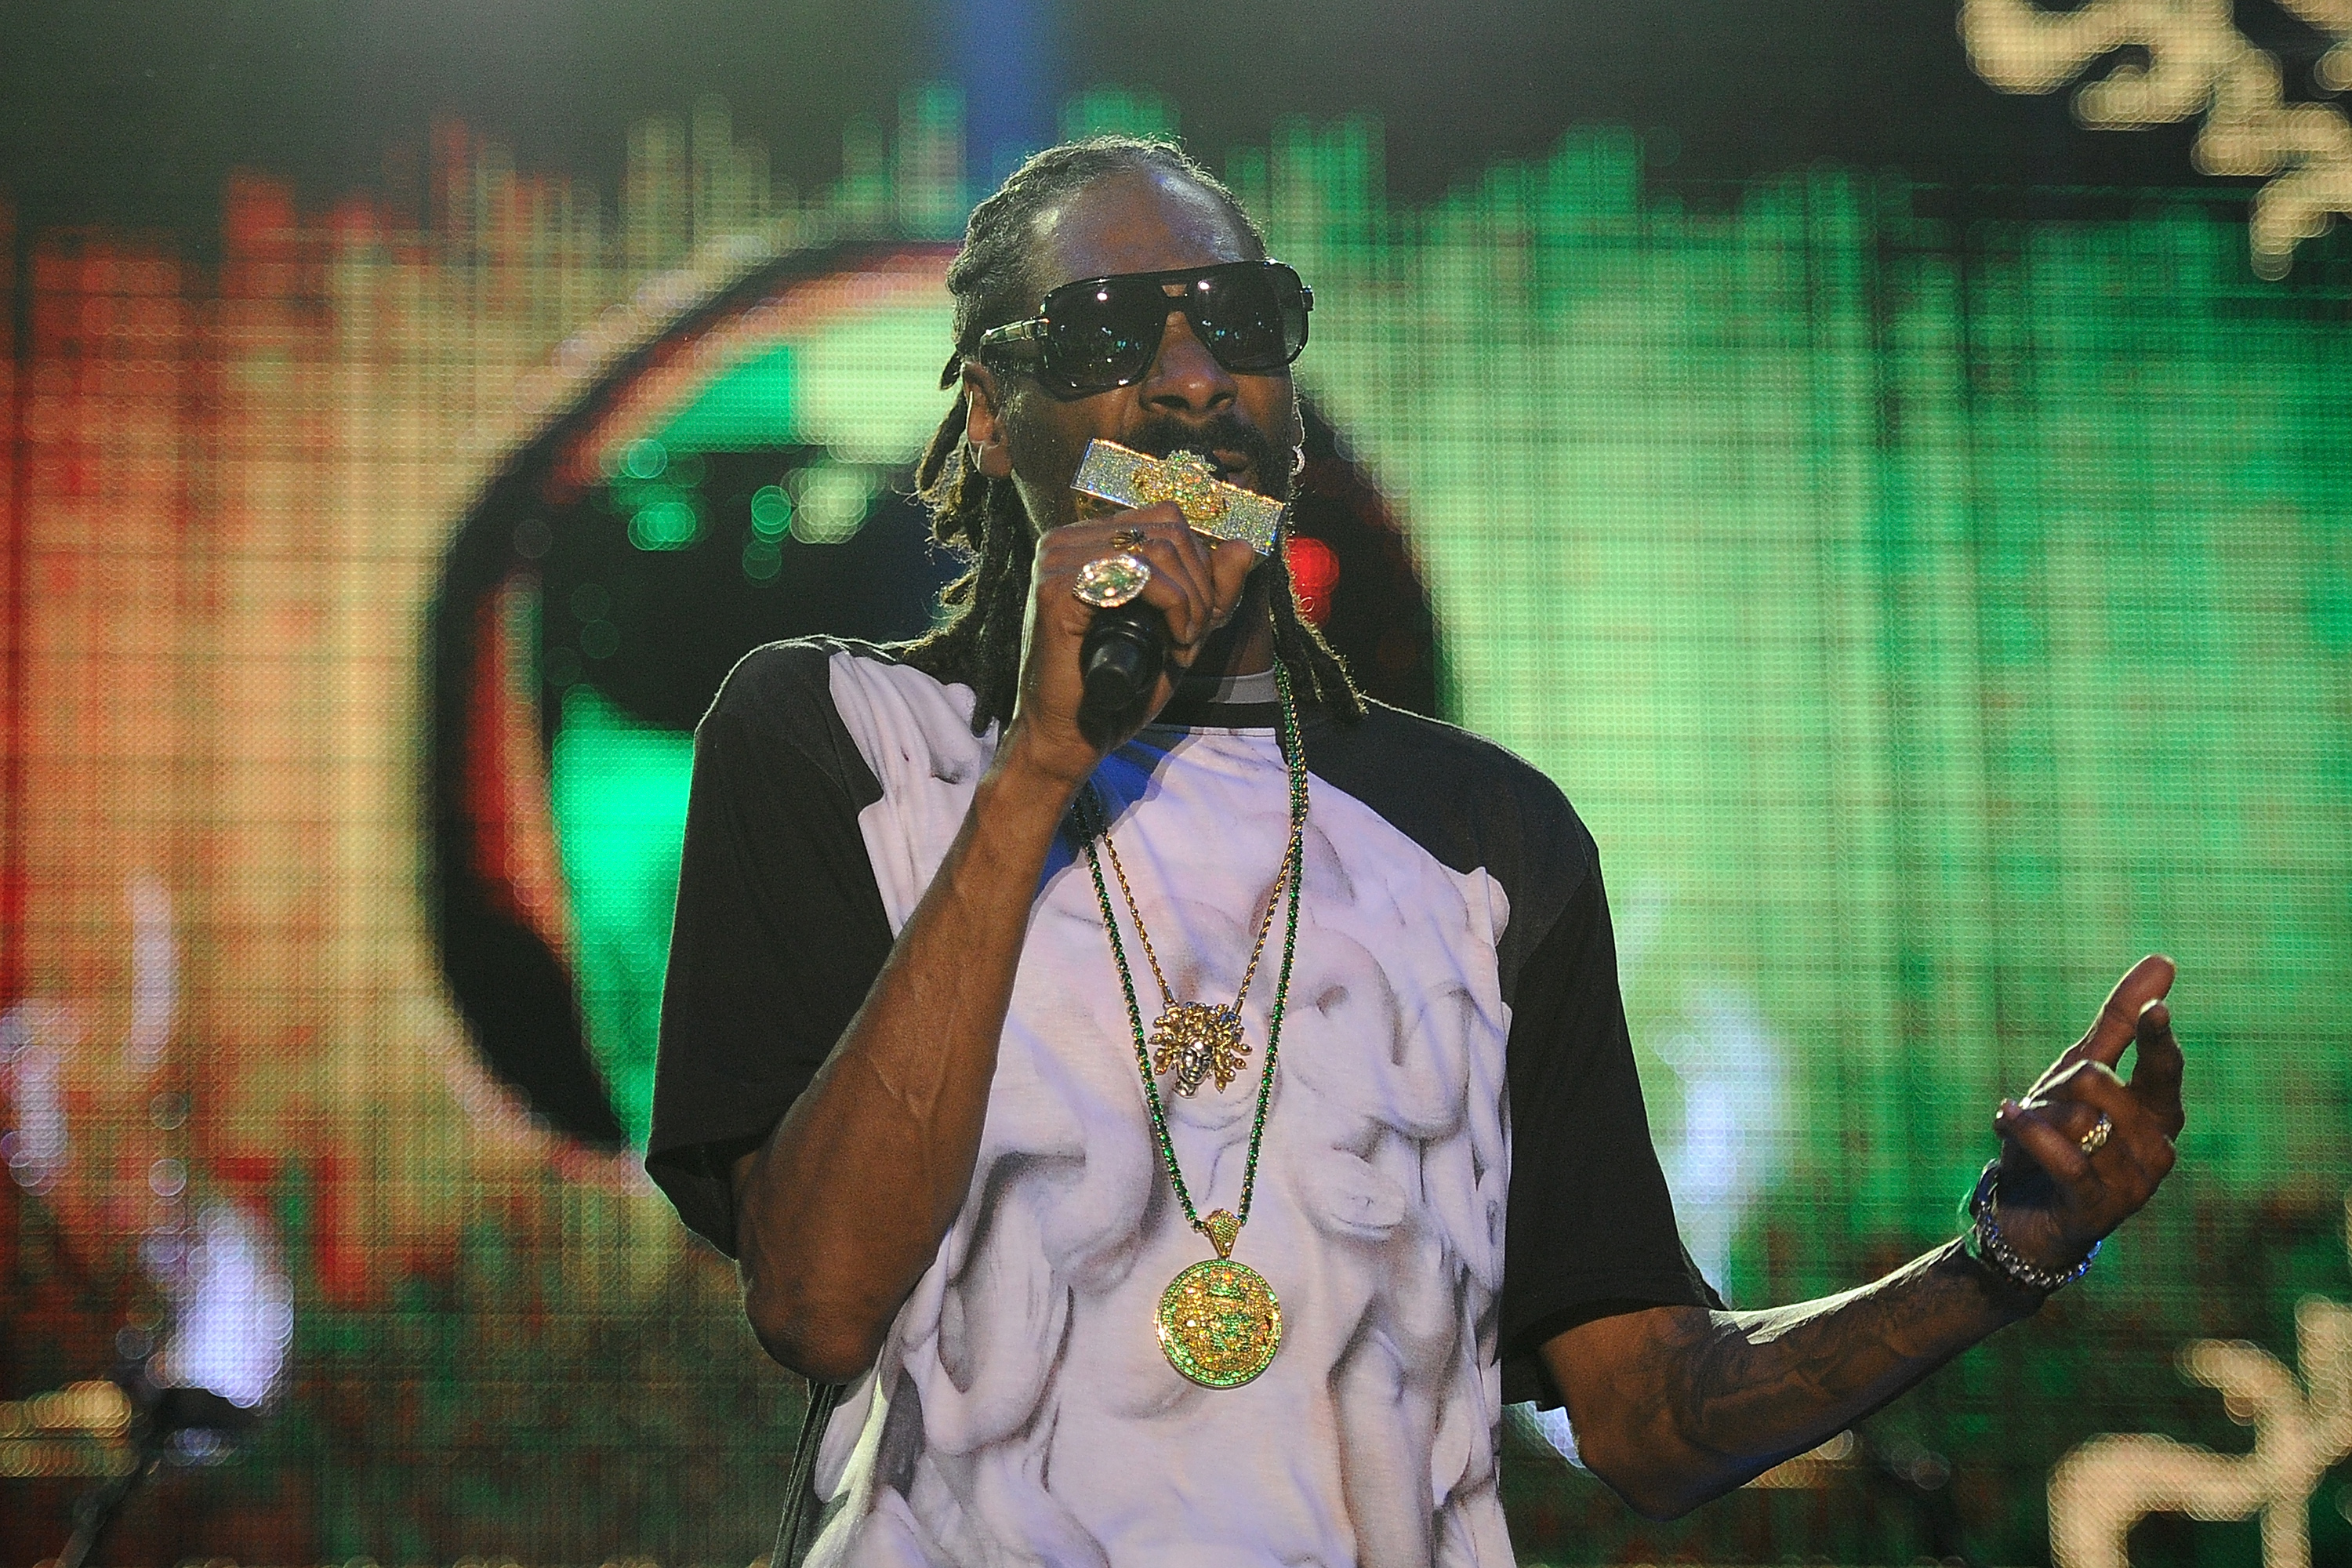 Snoop Dogg Is Uncle Snoop Now, But For Aspiring Rappers